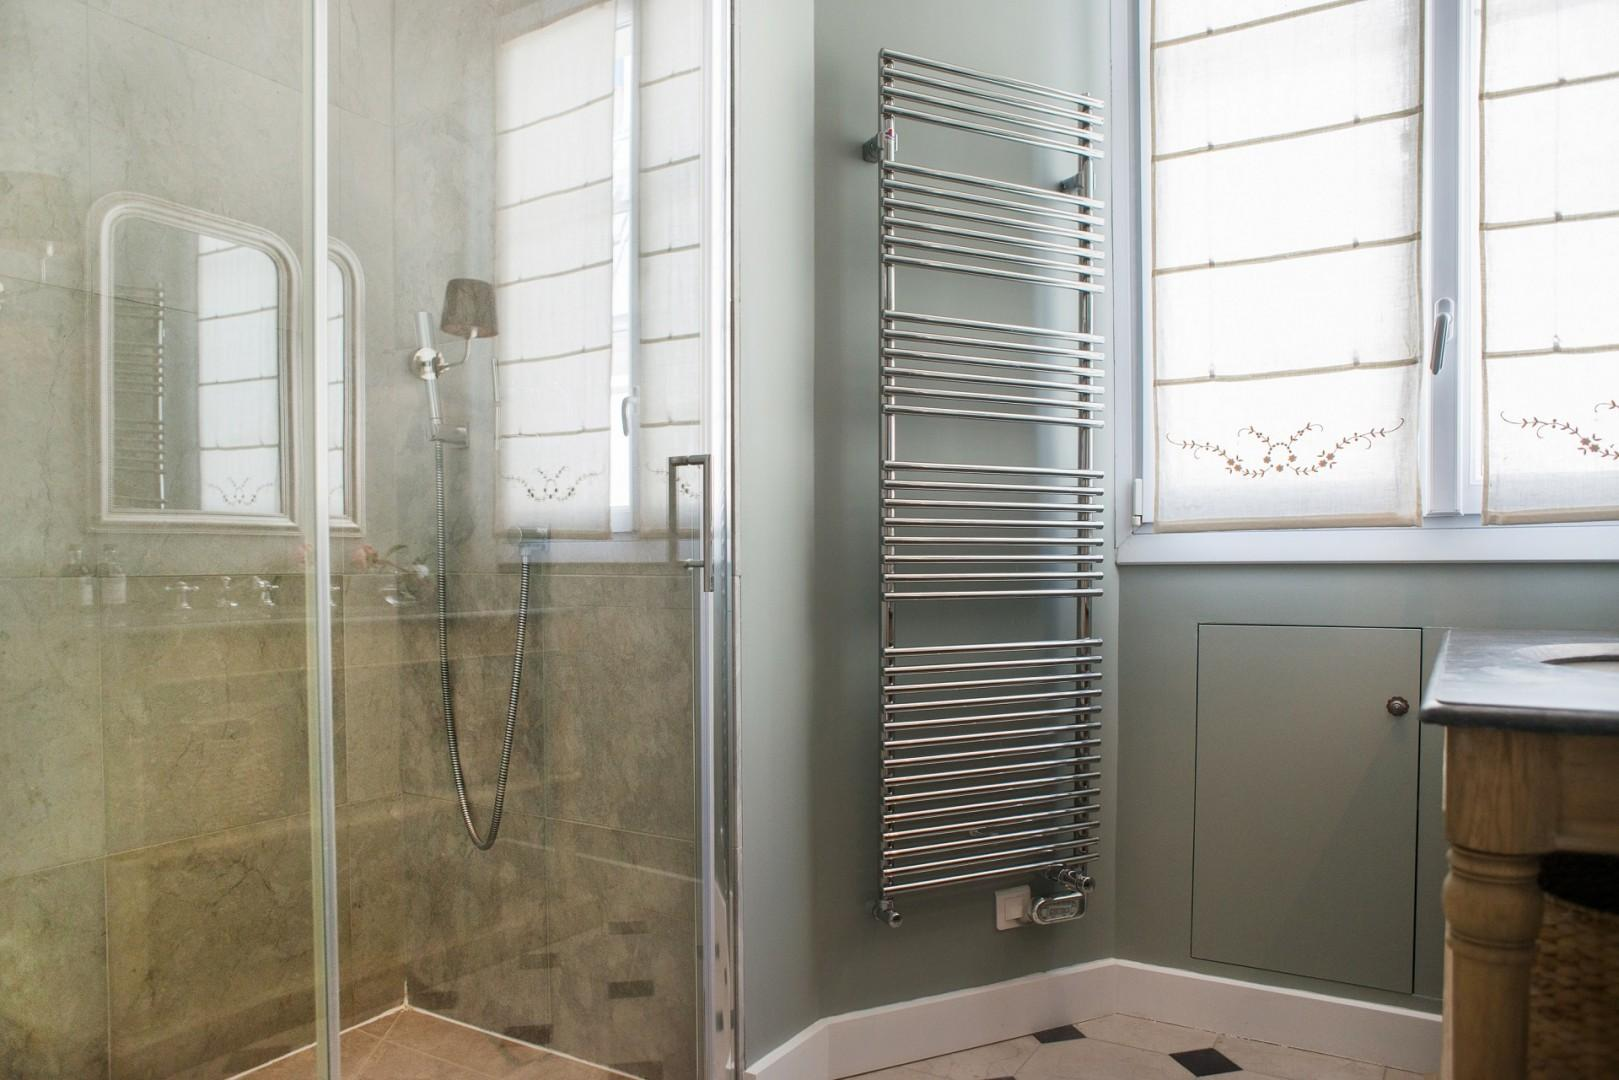 There is a practical towel warmer in bathroom 1.